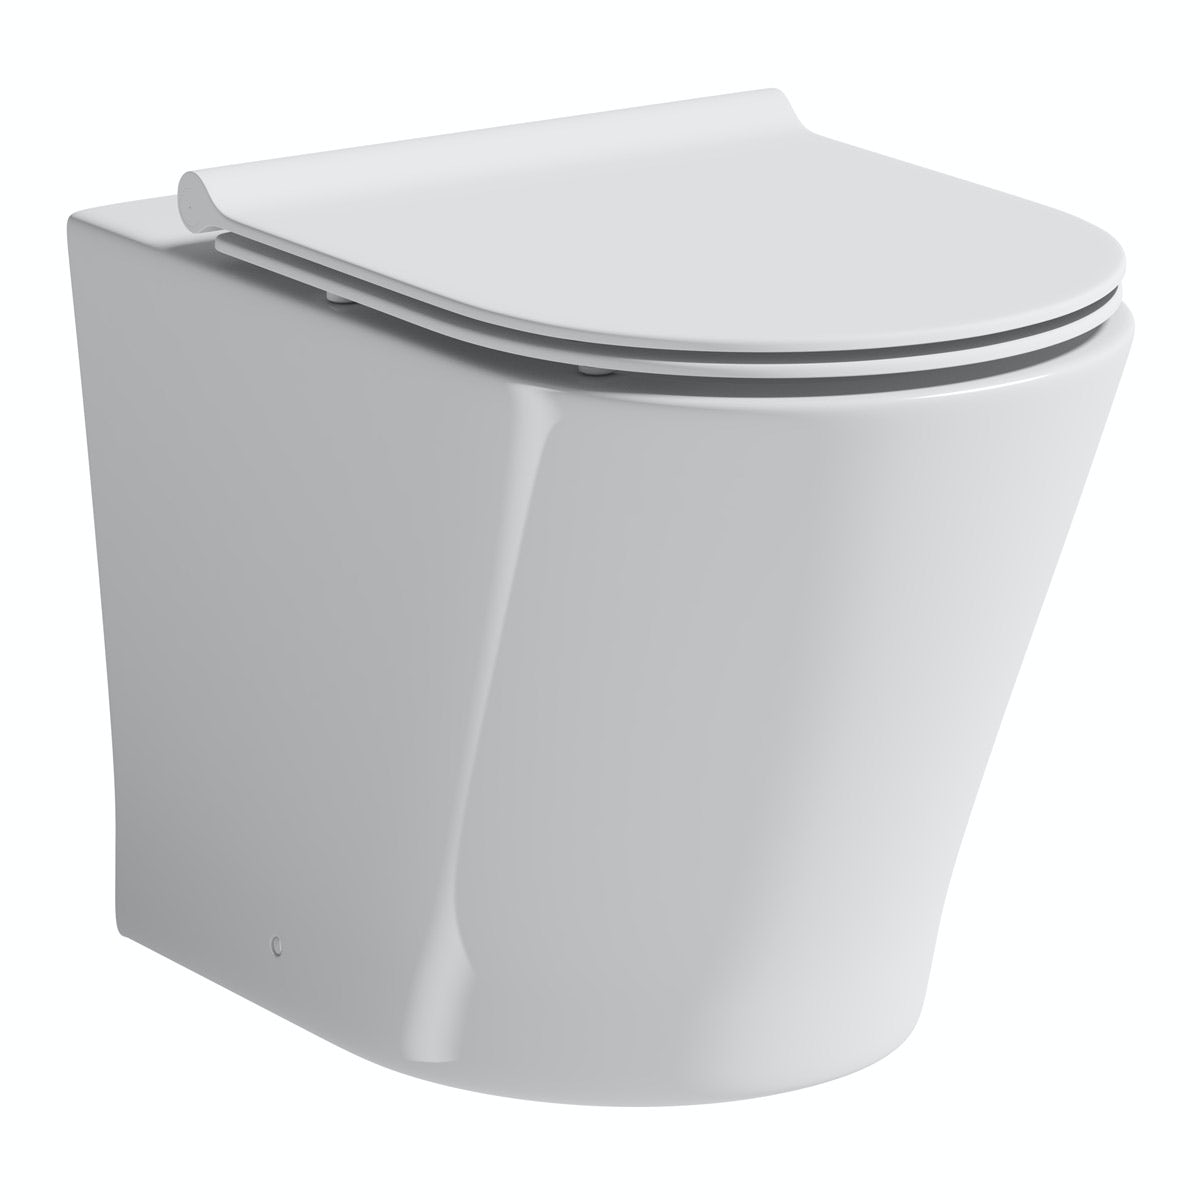 Mode Tate back to wall toilet with slim soft close seat